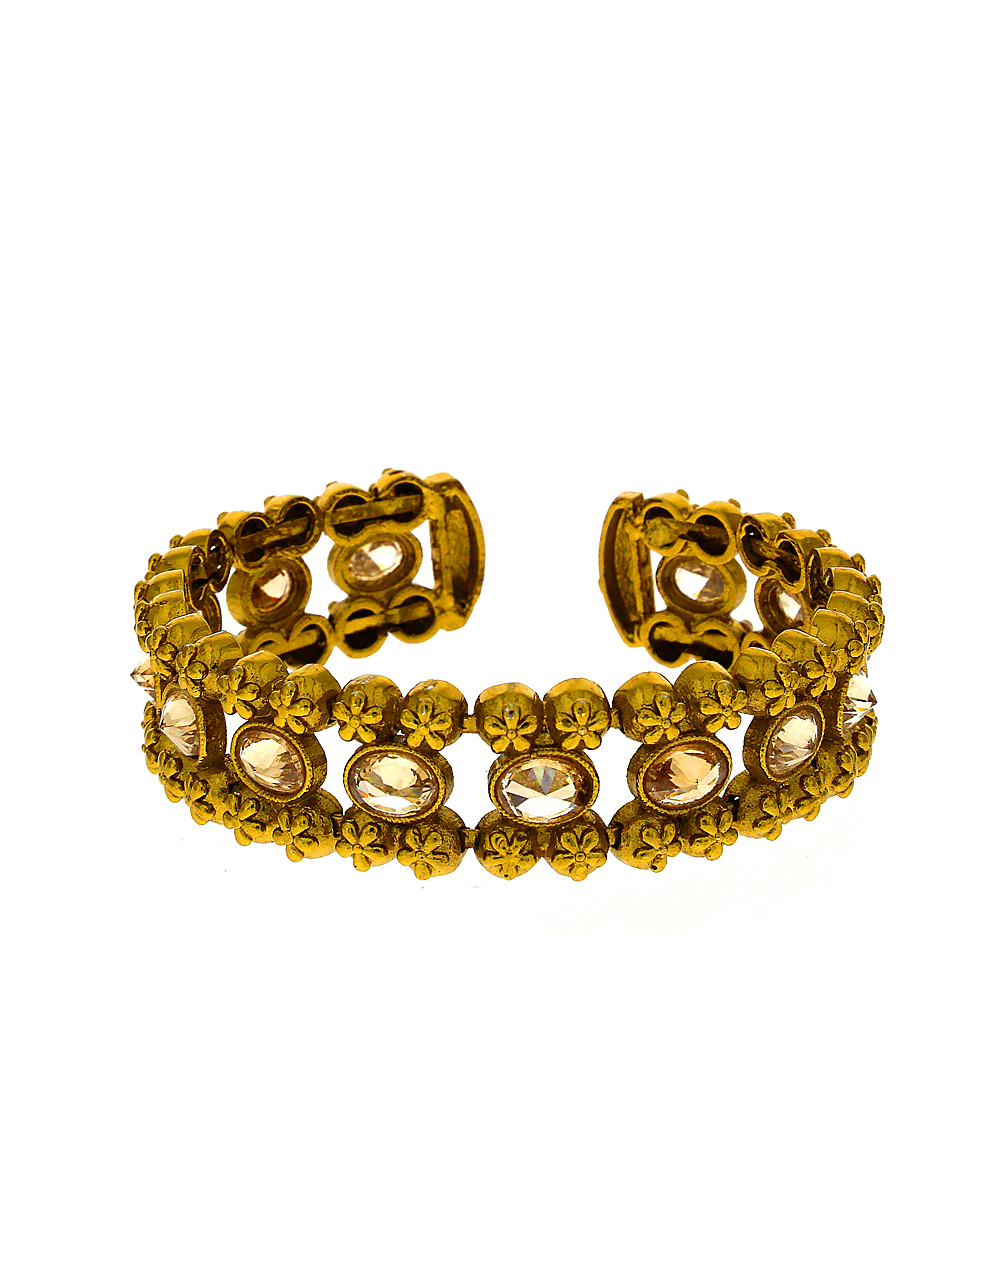 Beautiful Lct Stones Studded Floral Design Bracelet In Gold-Finish